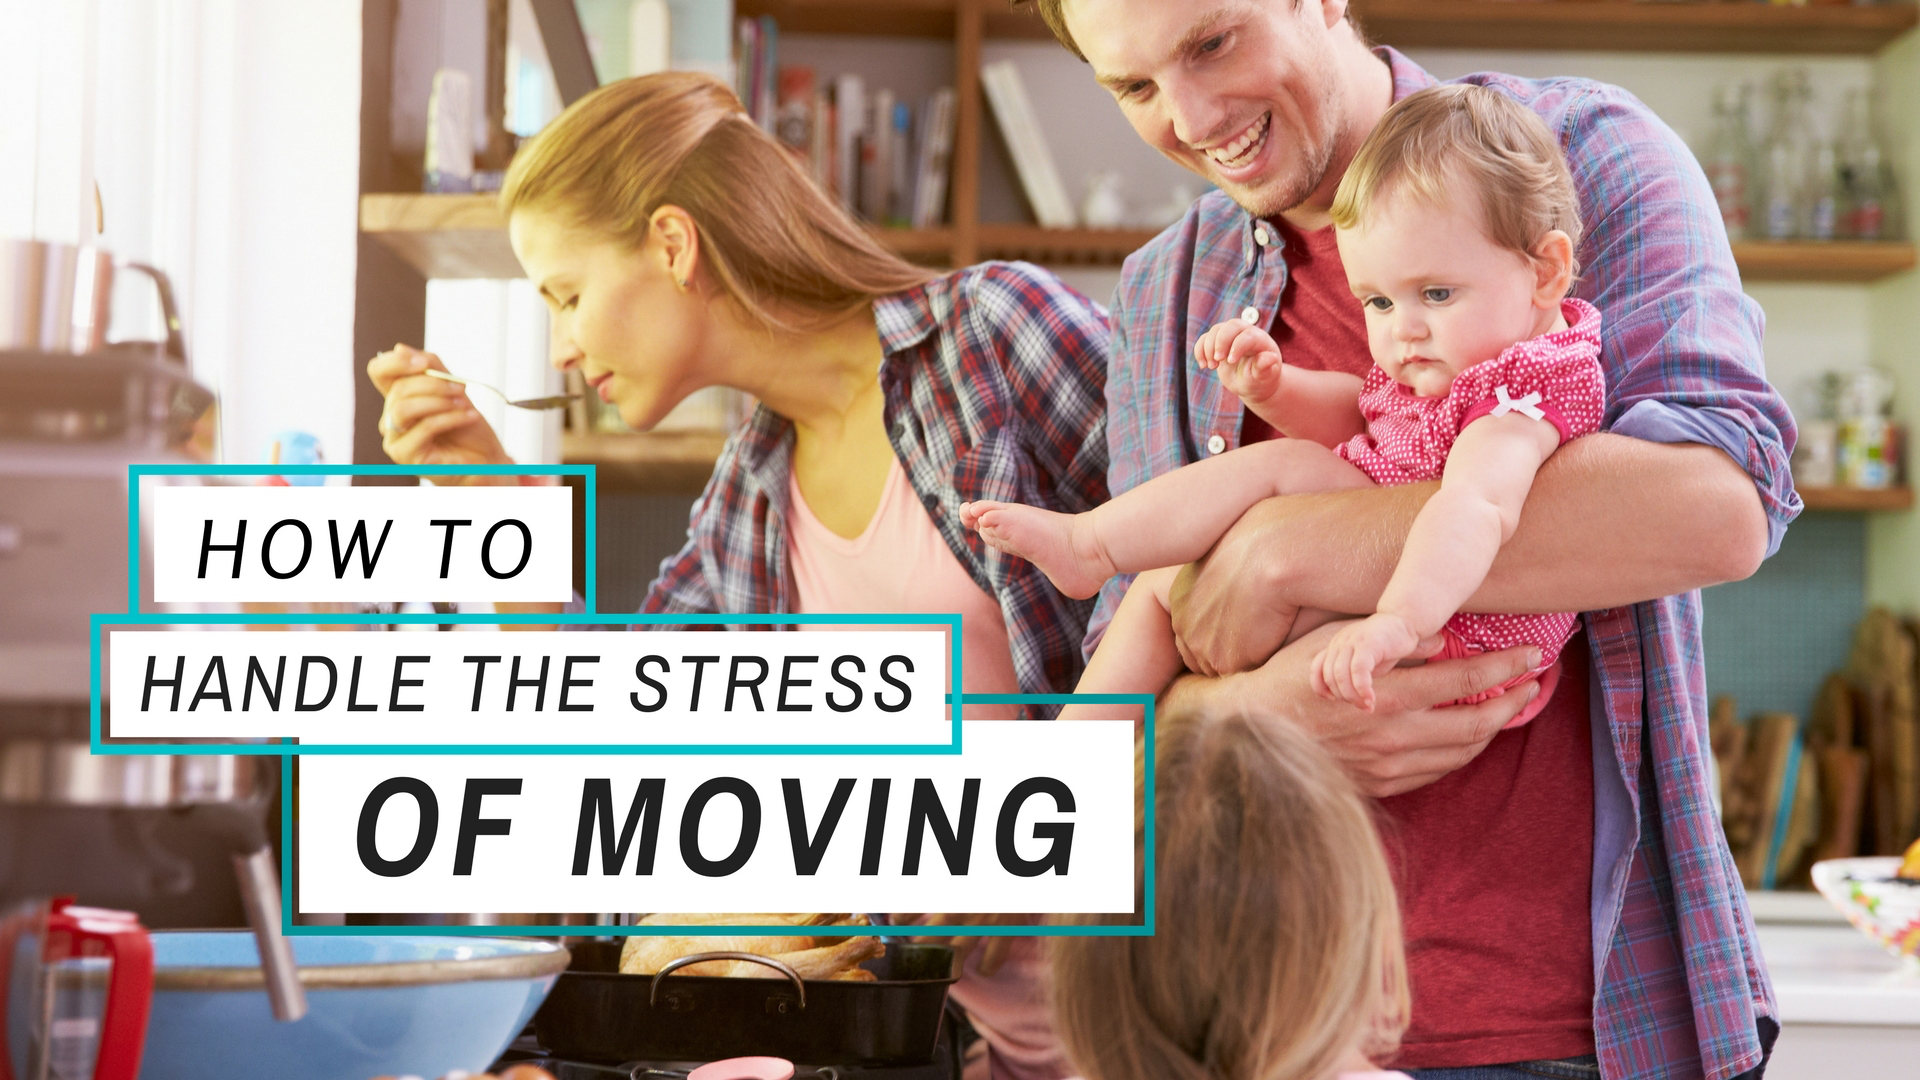 How to Handle the Stress of Moving | Car Chat with Bret Johnson